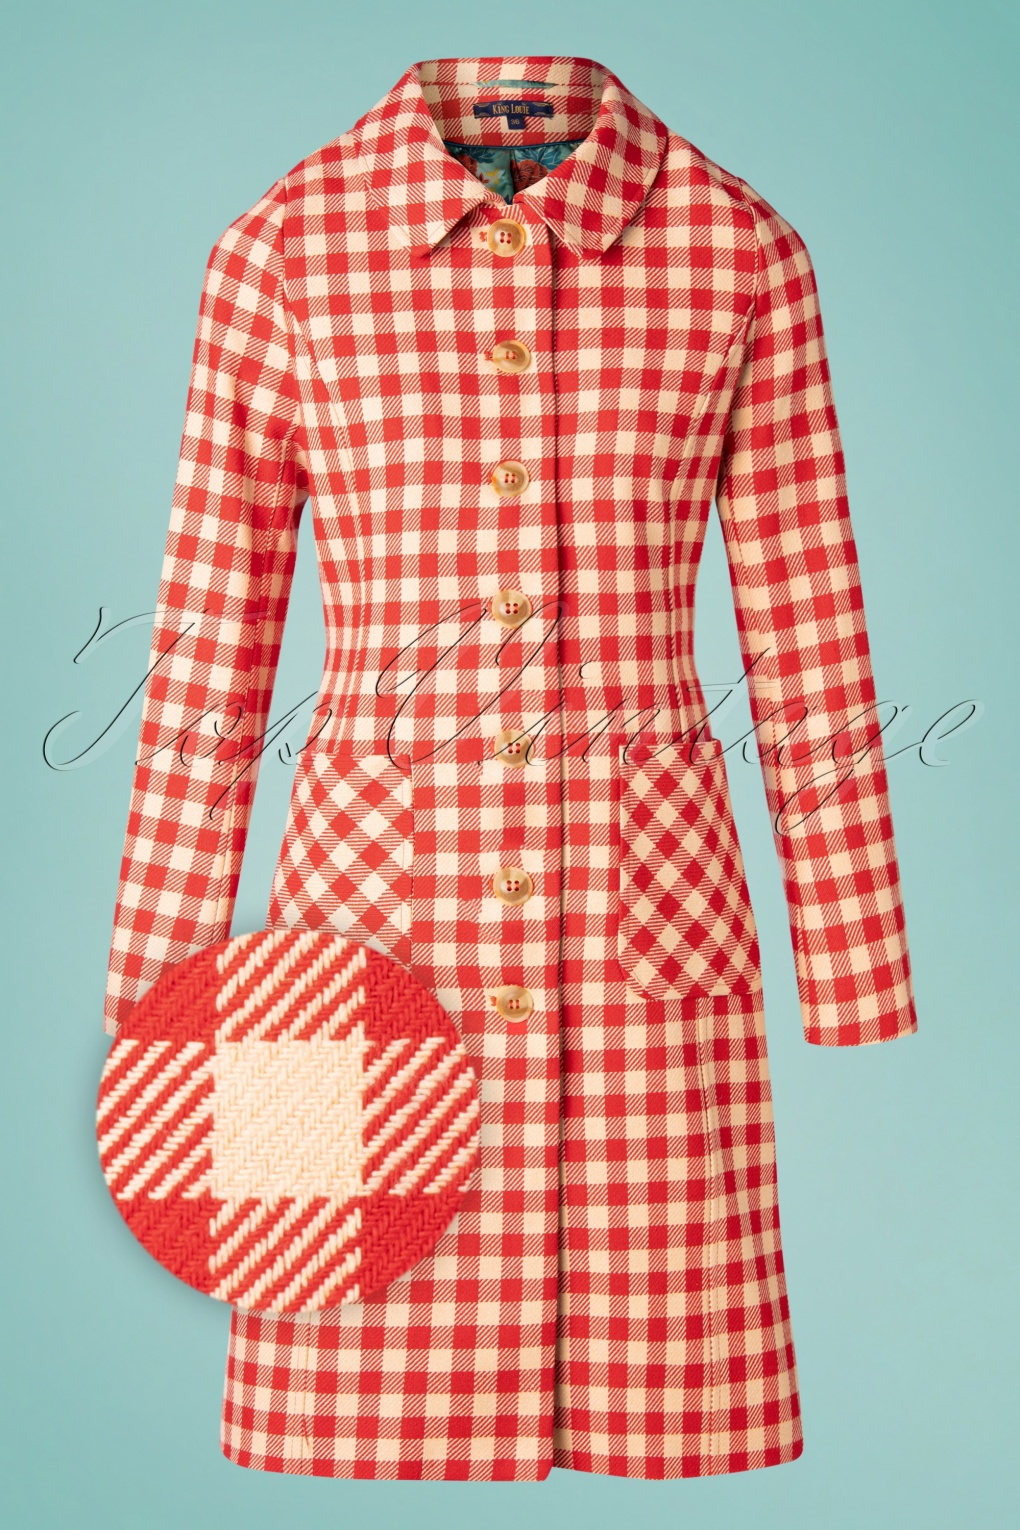 Vintage Coats & Jackets | Retro Coats and Jackets 60s Nathalie Nimes Check Coat in Red £131.56 AT vintagedancer.com